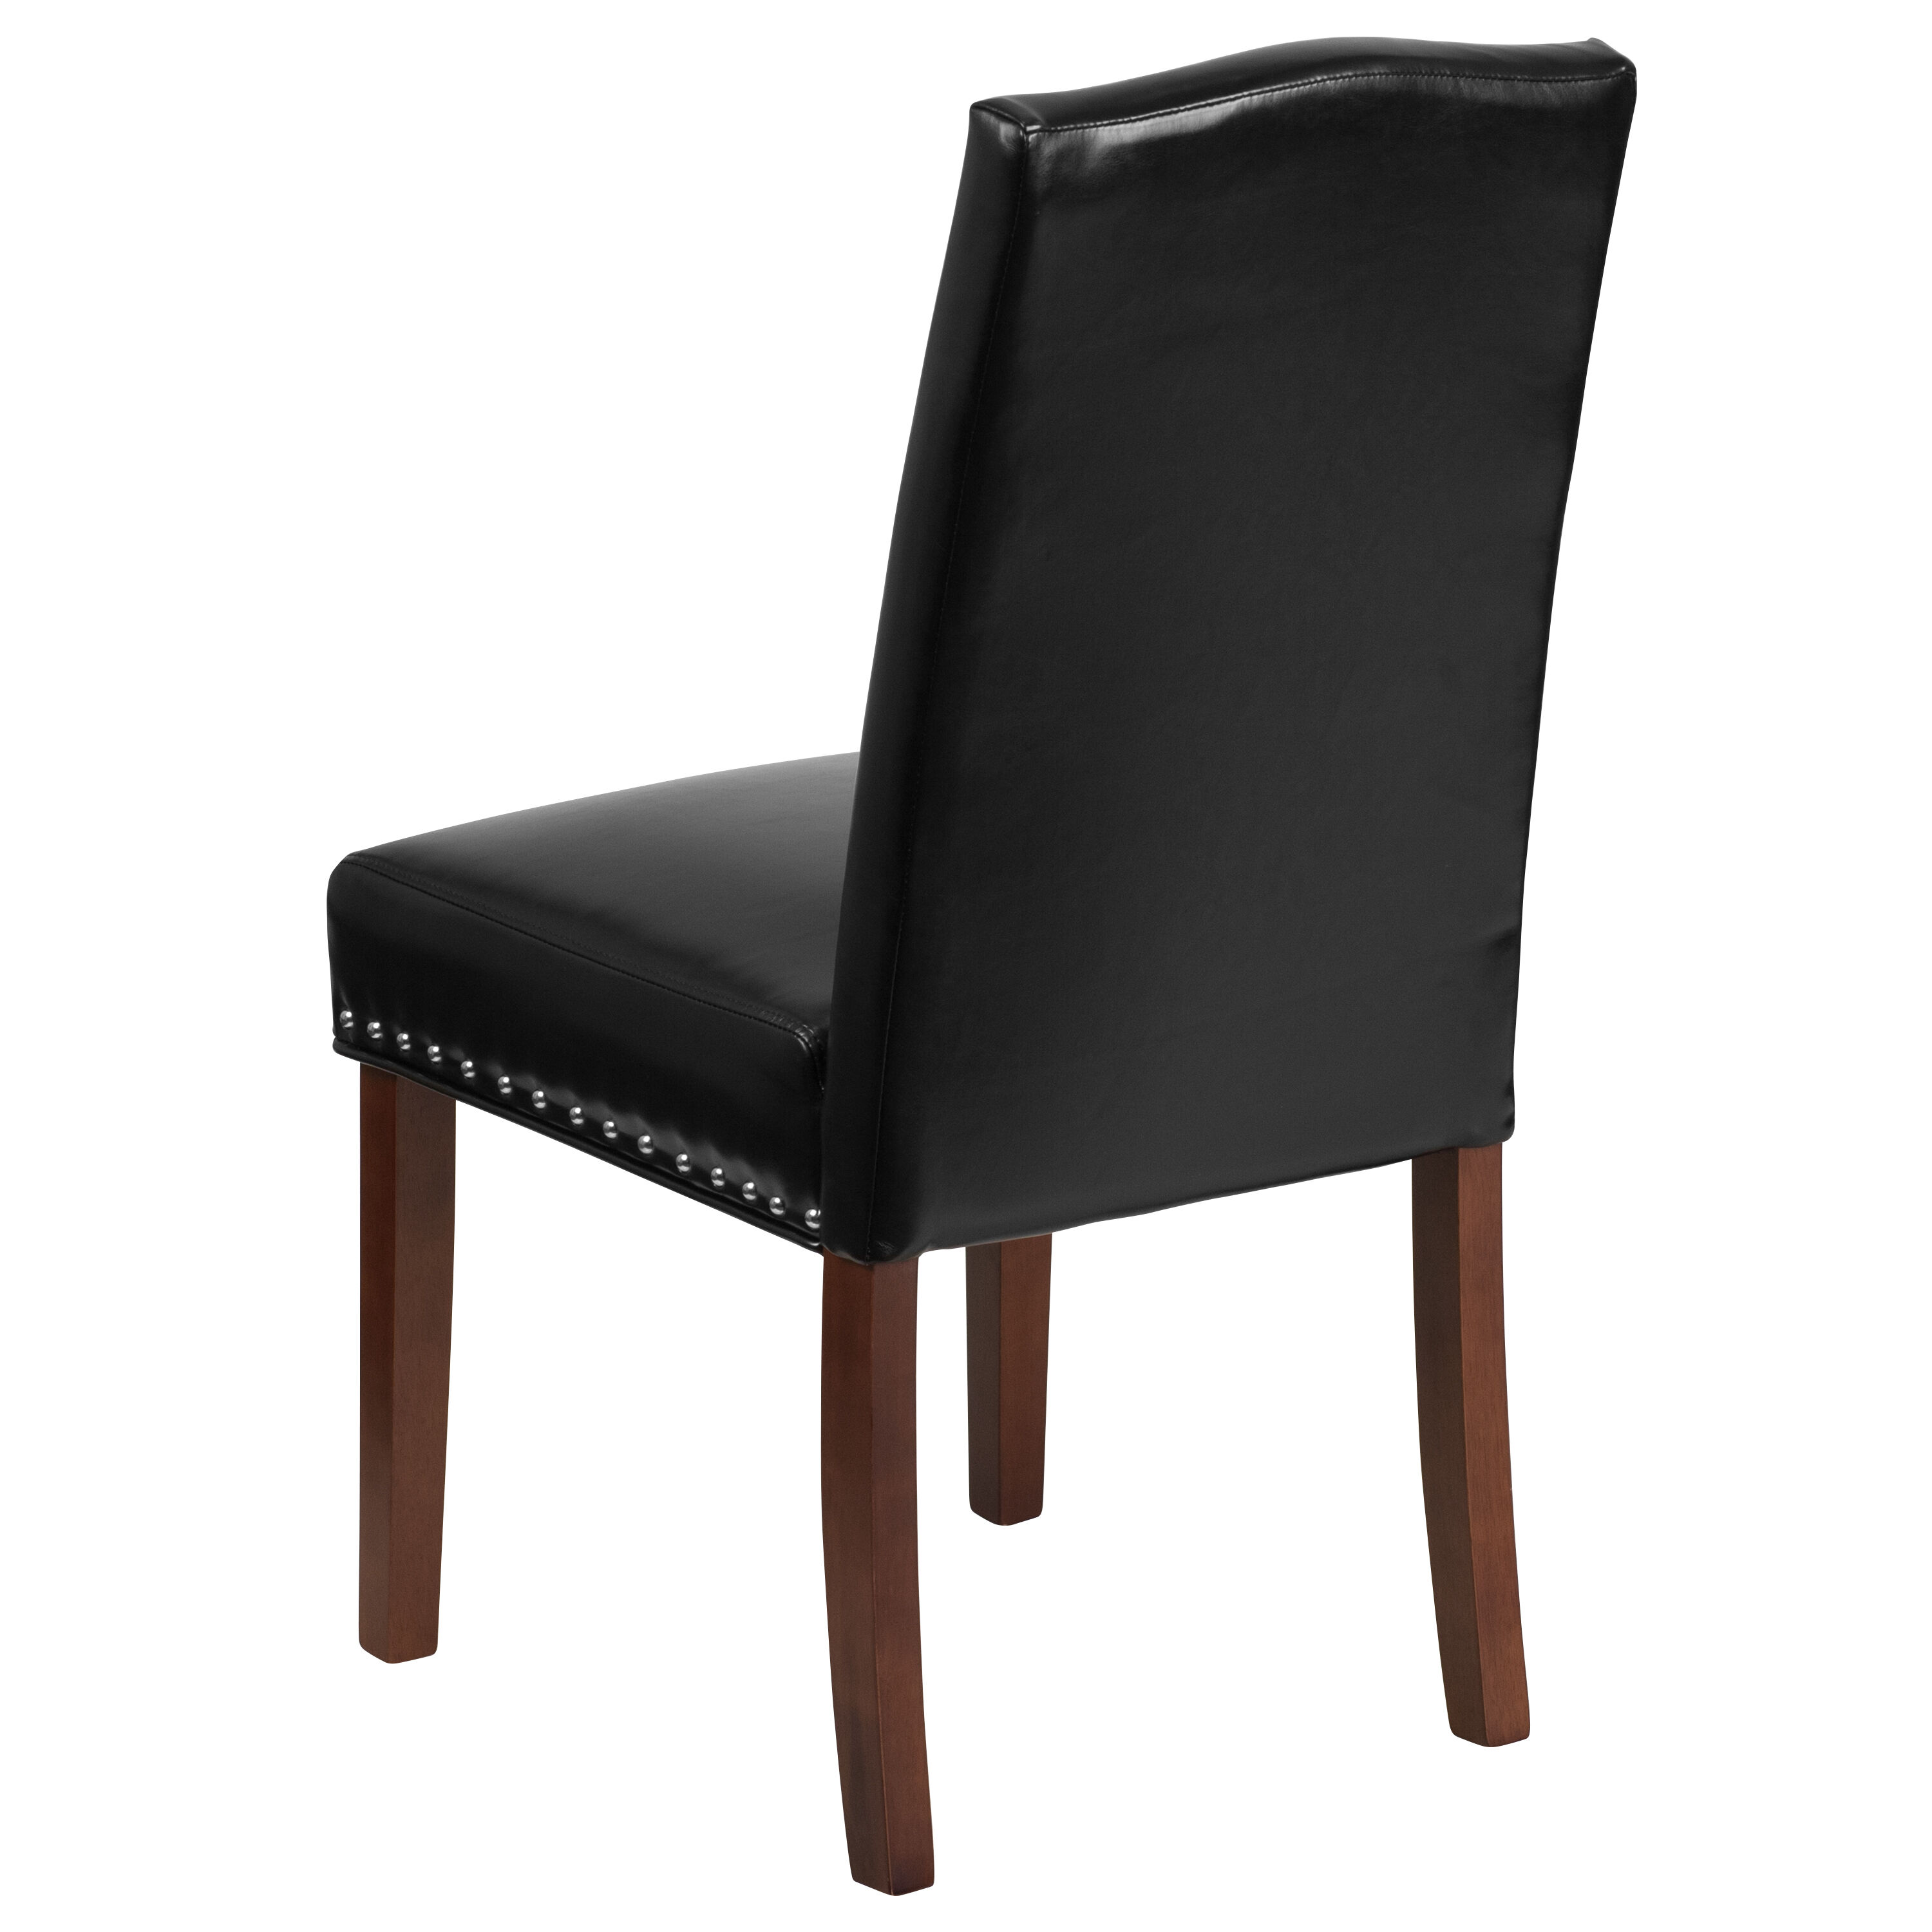 ... Our HERCULES Hampton Hill Series Black Leather Parsons Chair With  Silver Accent Nail Trim Is On ...